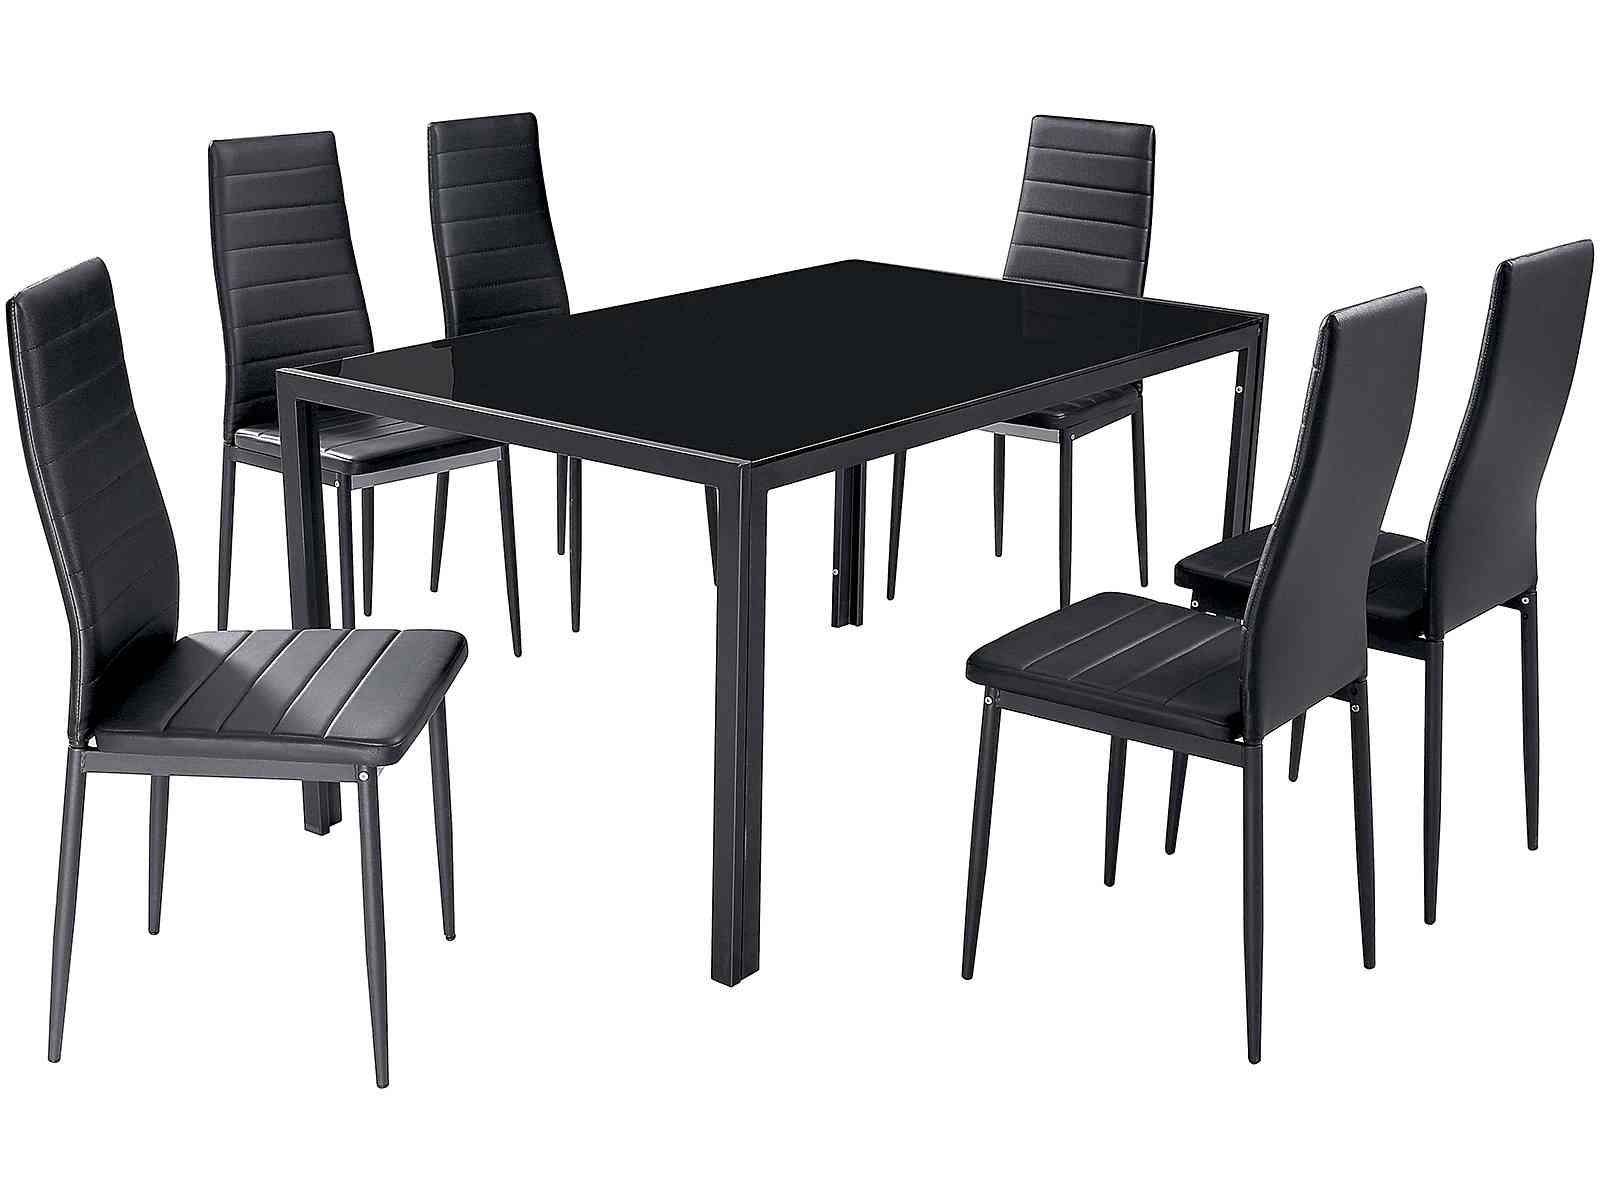 6 Black Dining Chairs Winda 7 Furniture